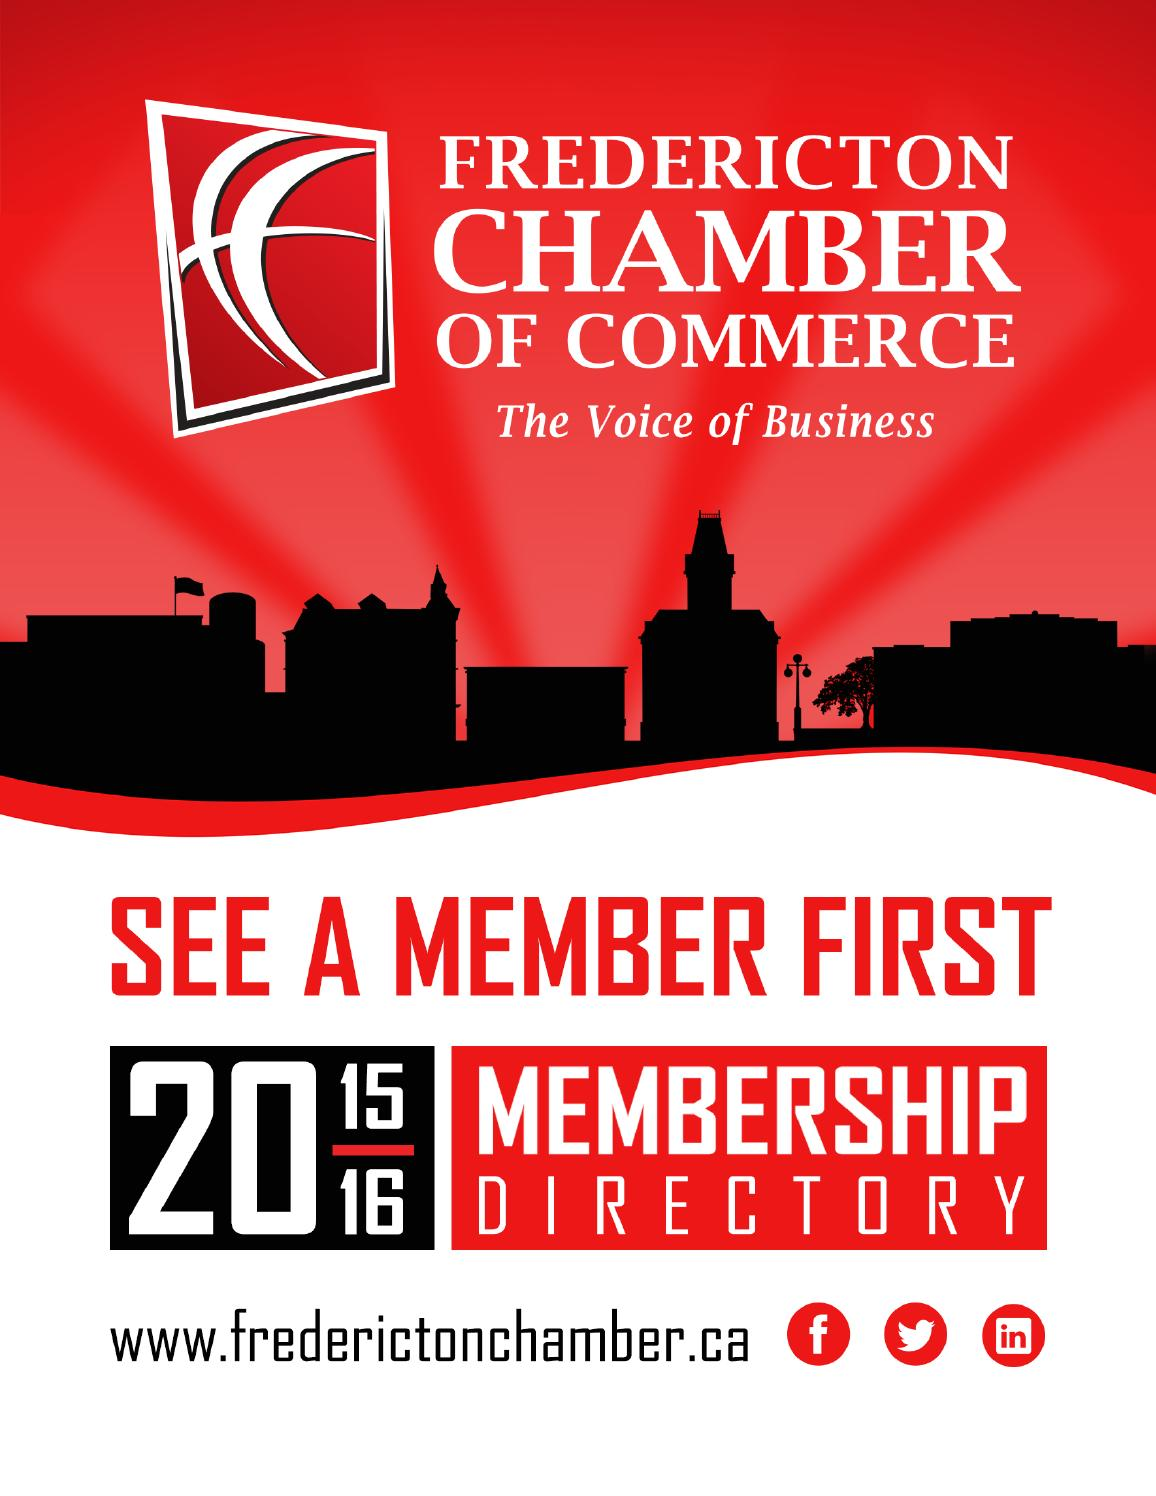 Fredericton chamber of commerce membership directory 2015 for Chamber of commerce